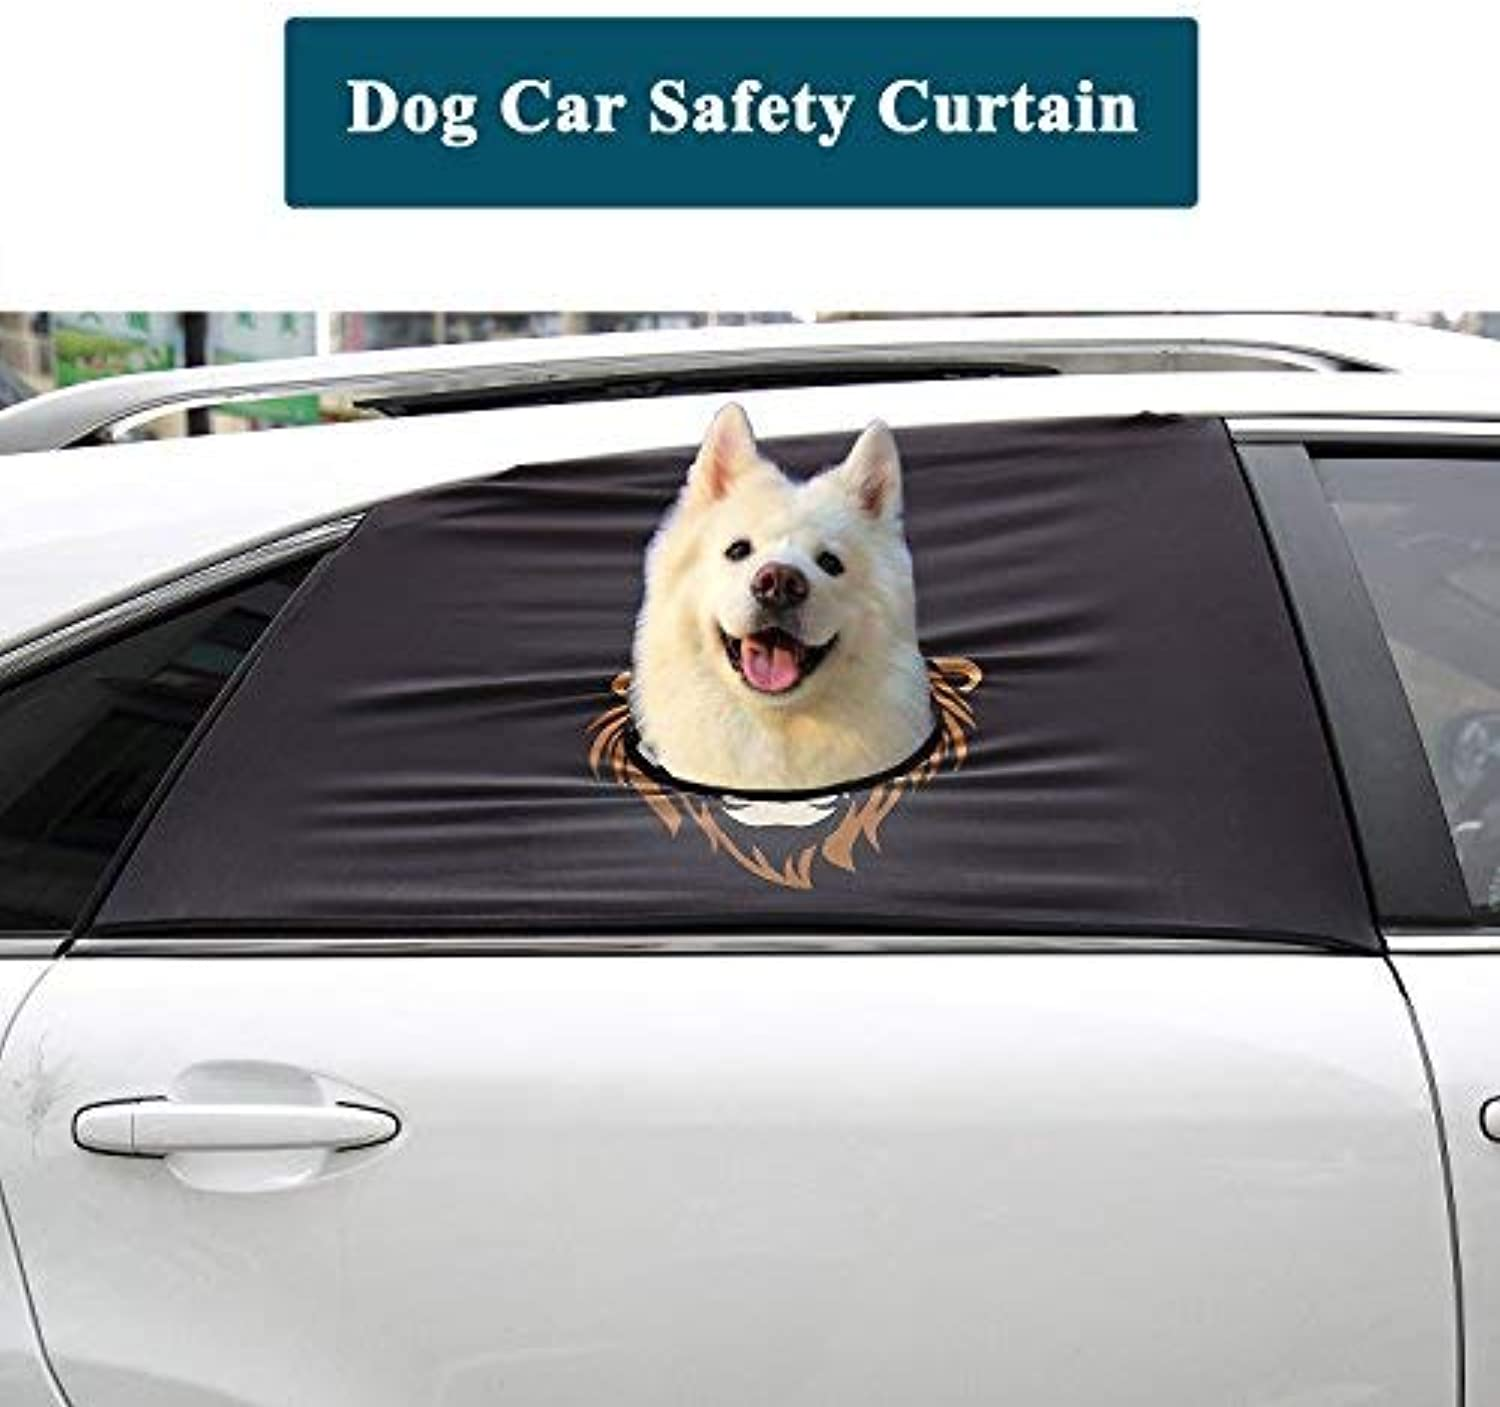 Flightbird Dog Car Safety Curtain, Car Window Barriers Foldable Car Sun Shades for Baby Pet Kid,Adjustable Flexible Breathable Stylish Universal Fit for Car SUV Jeep